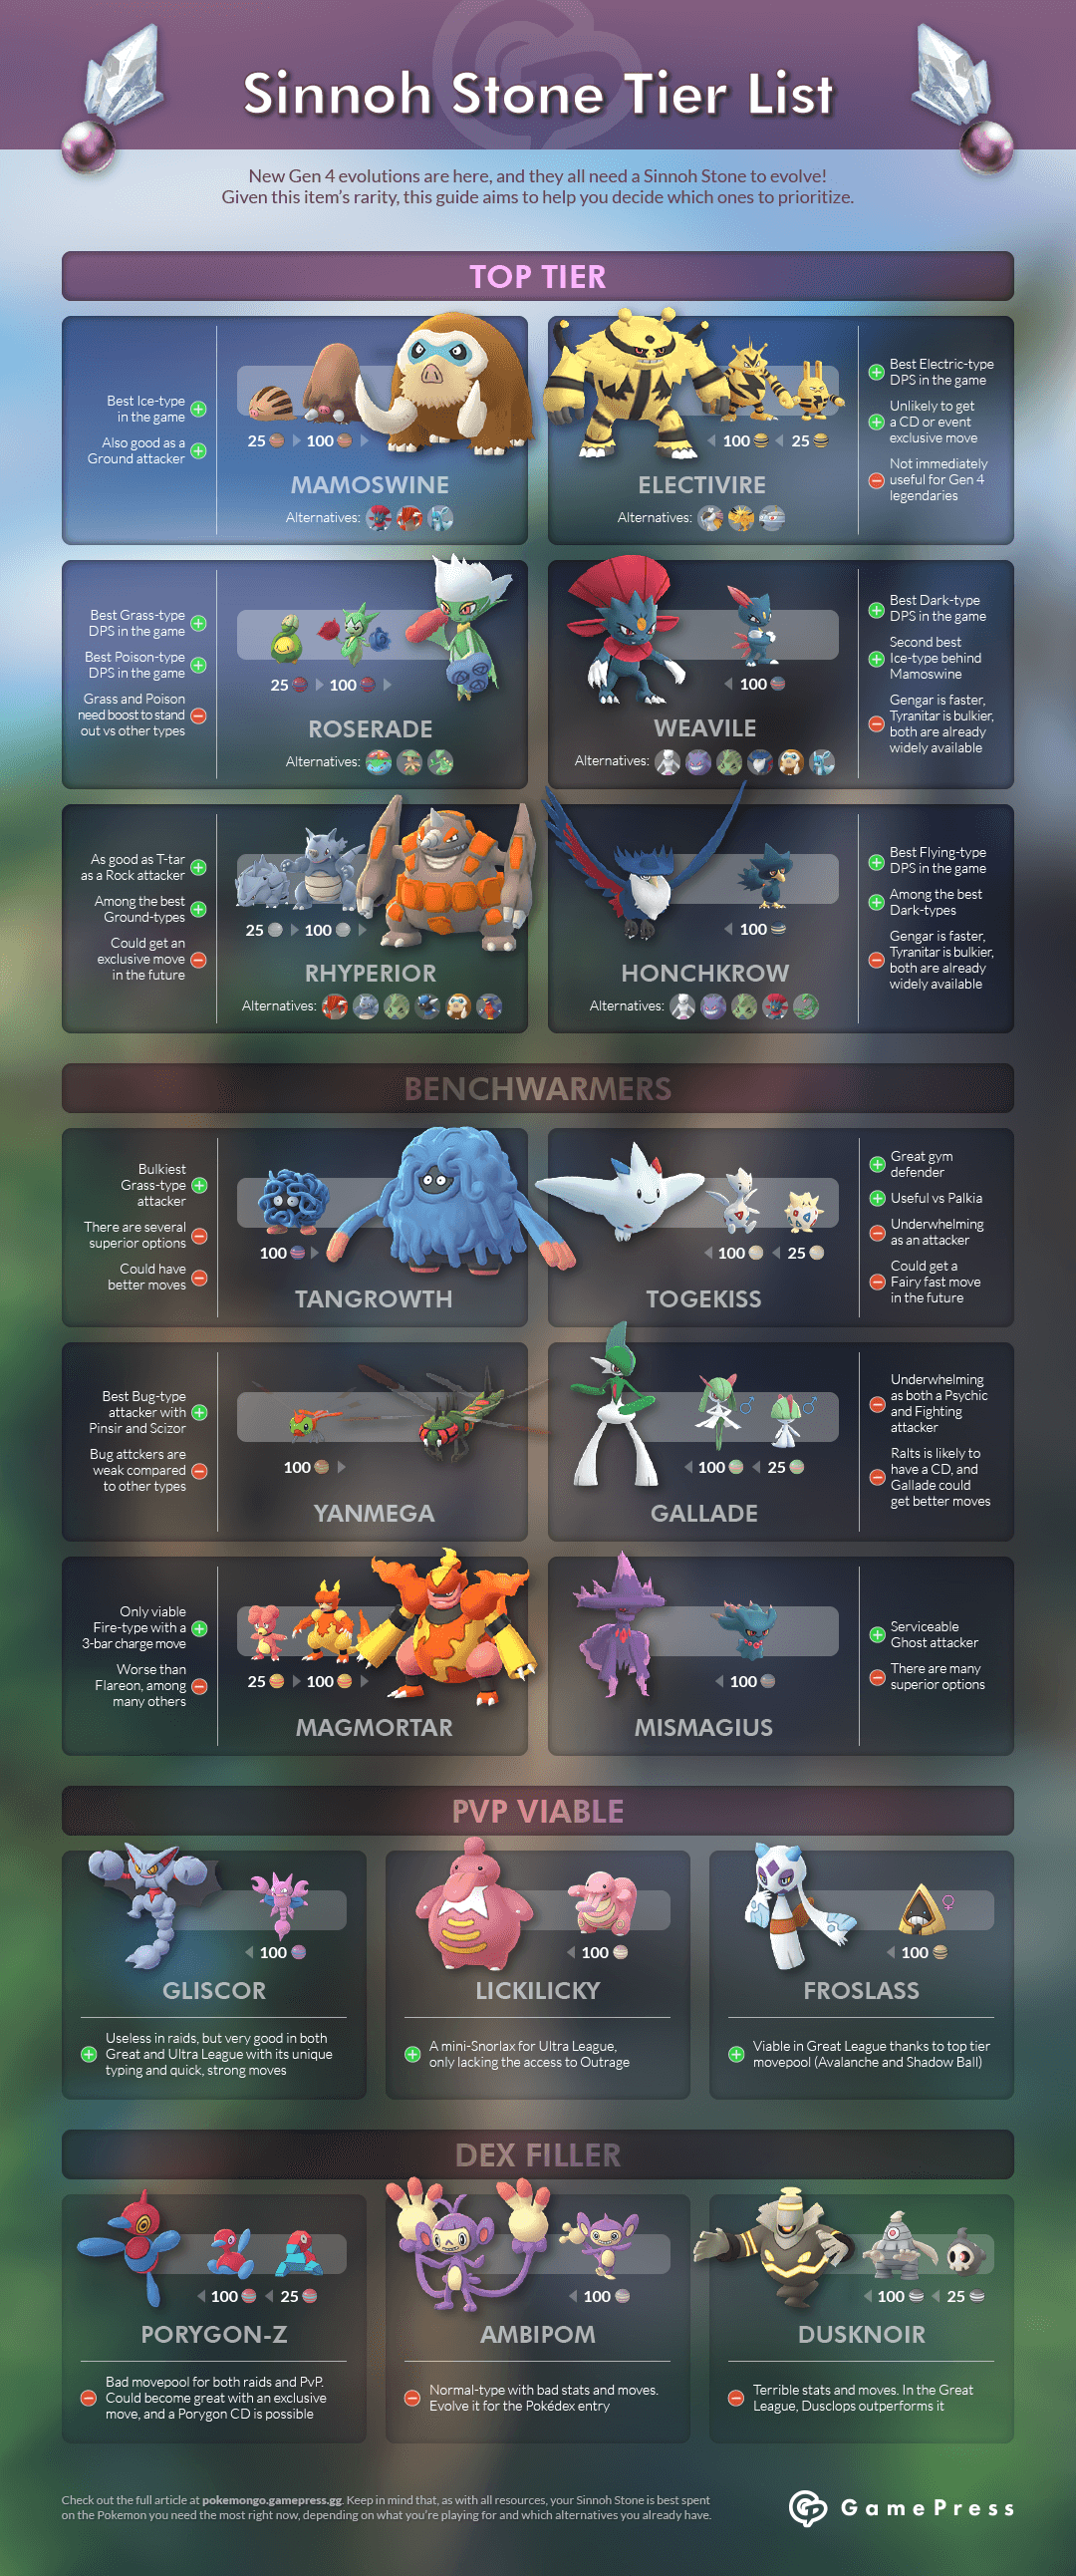 Sinnoh Stone Tier List | Pokemon GO Wiki - GamePress